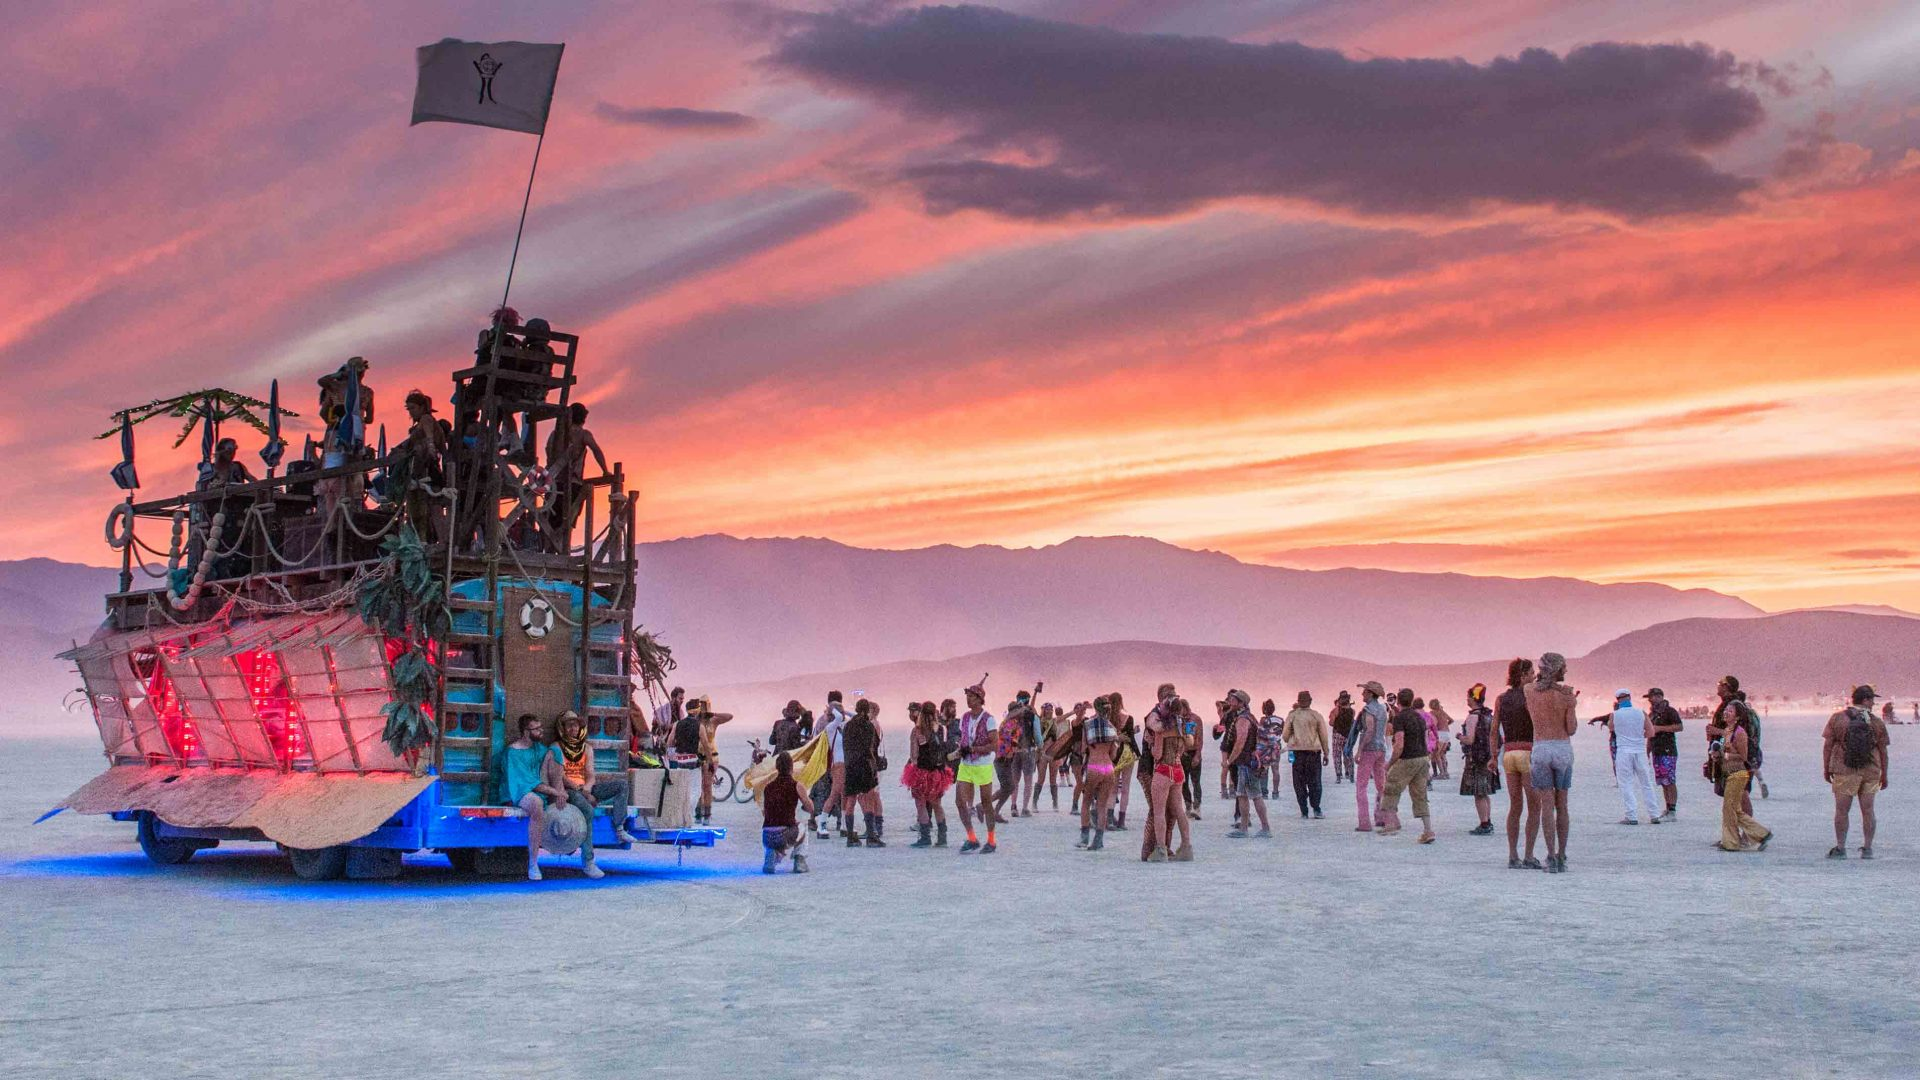 These photos will transport you to the desert utopia of Burning Man